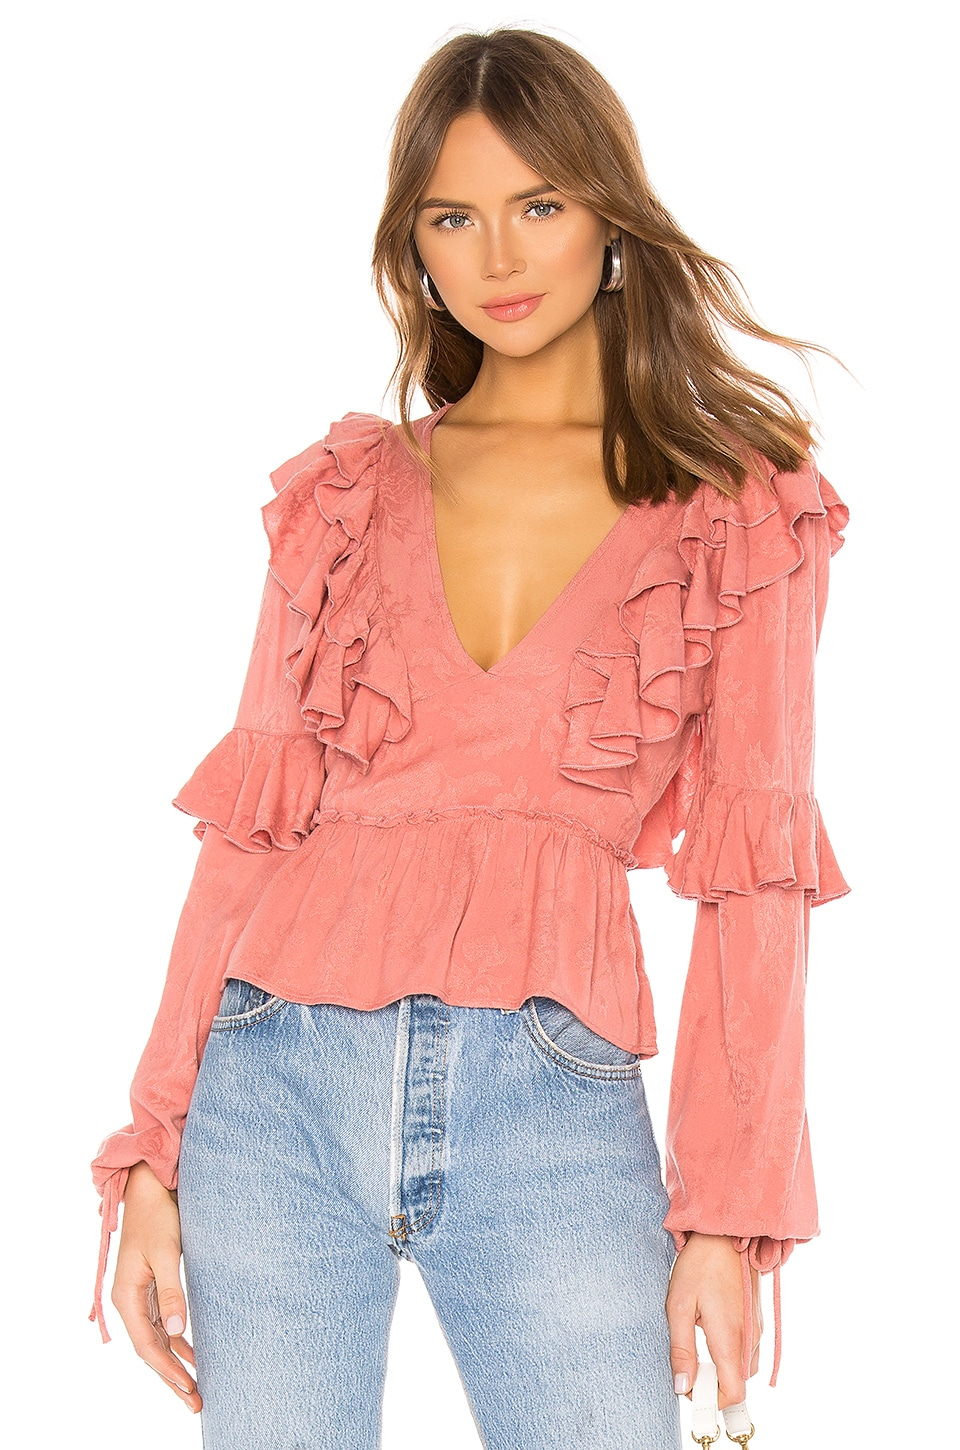 Tularosa Mabel Top in Dusty Rose